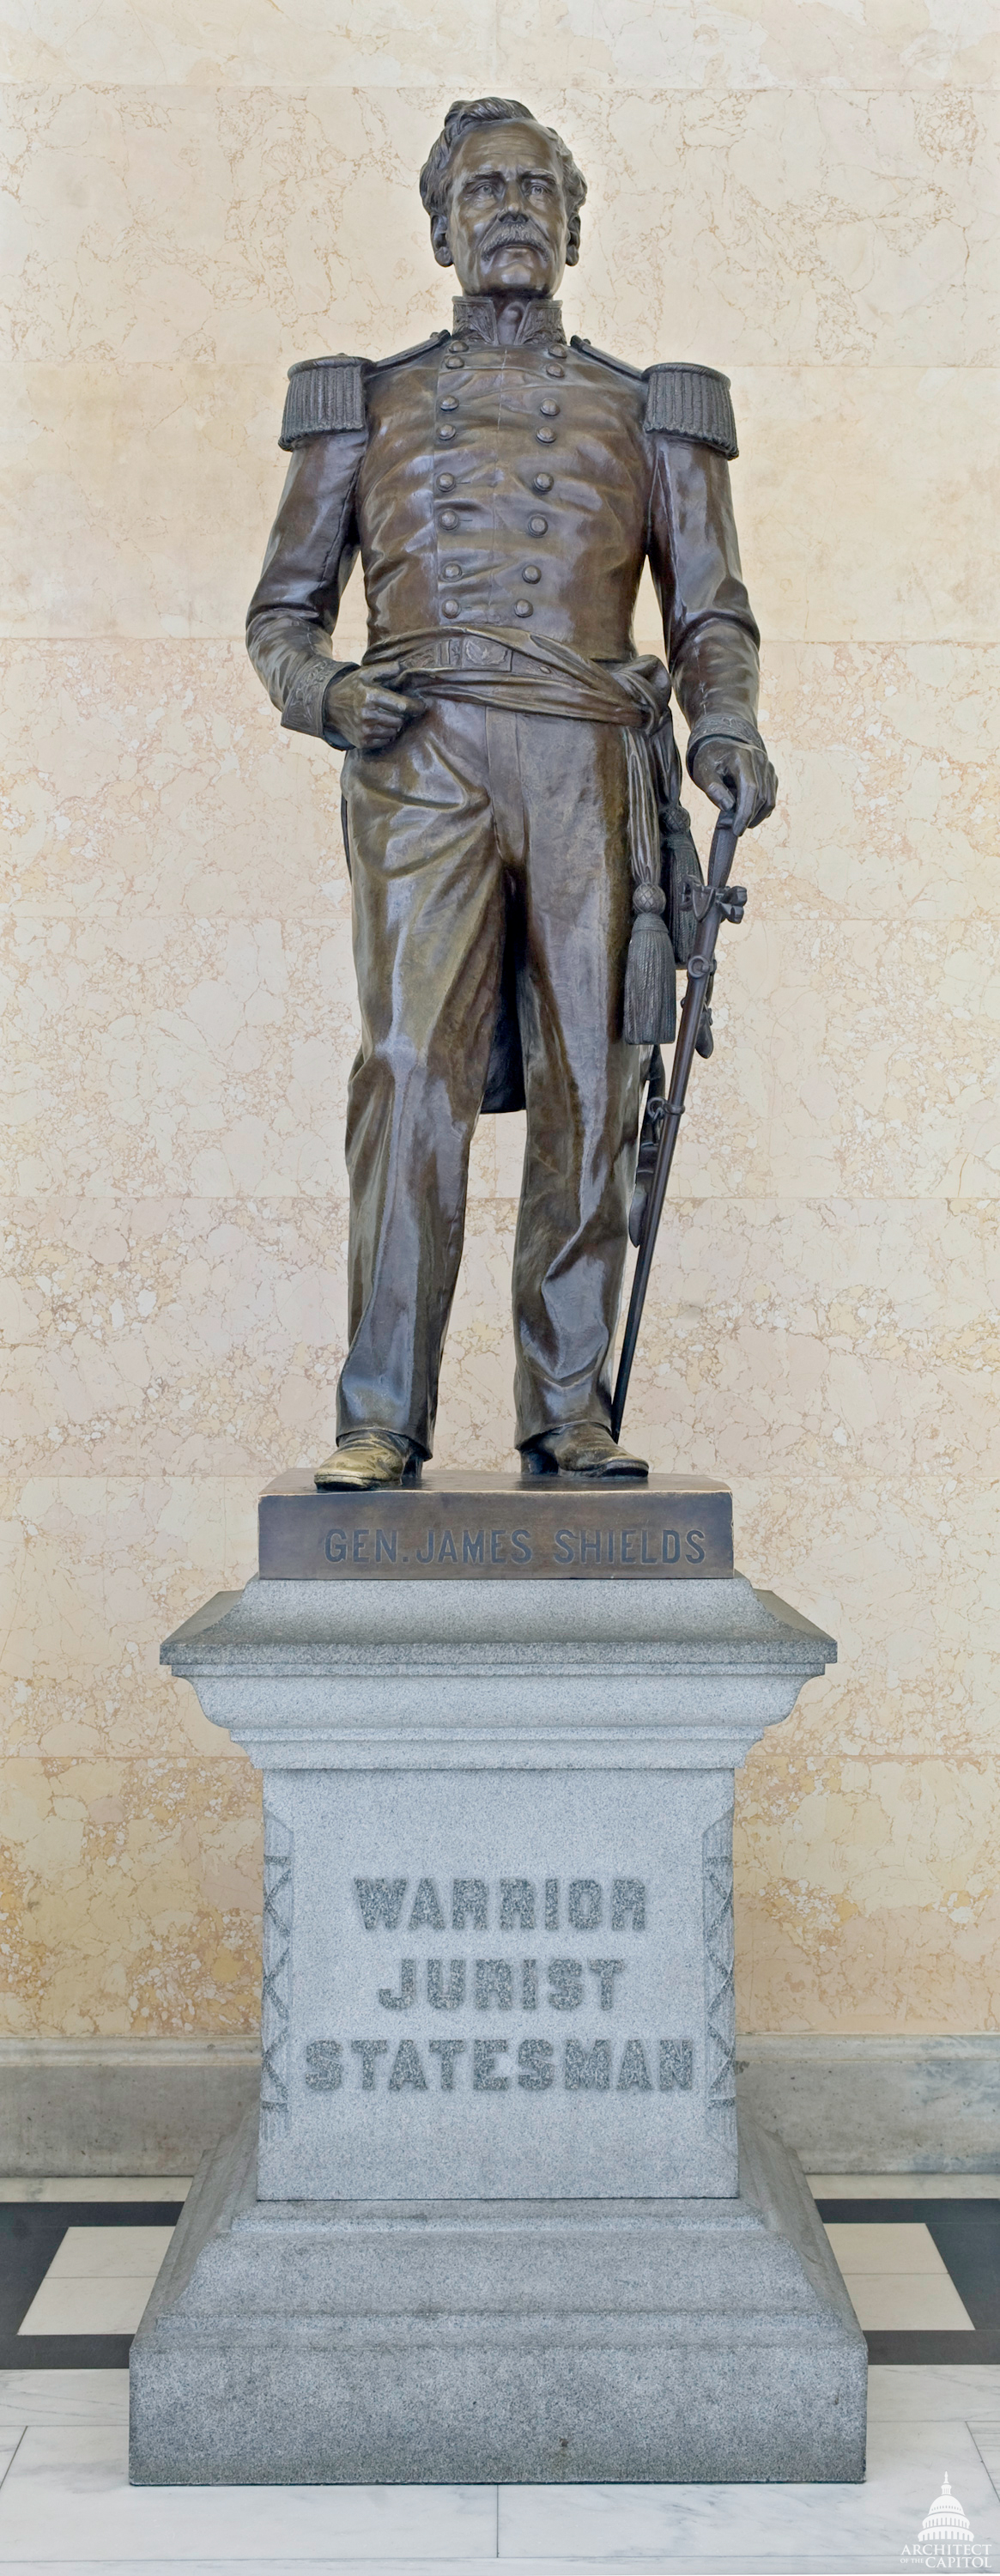 This statue of James Shields was given to the National Statuary Hall Collection by Illinois in 1893.